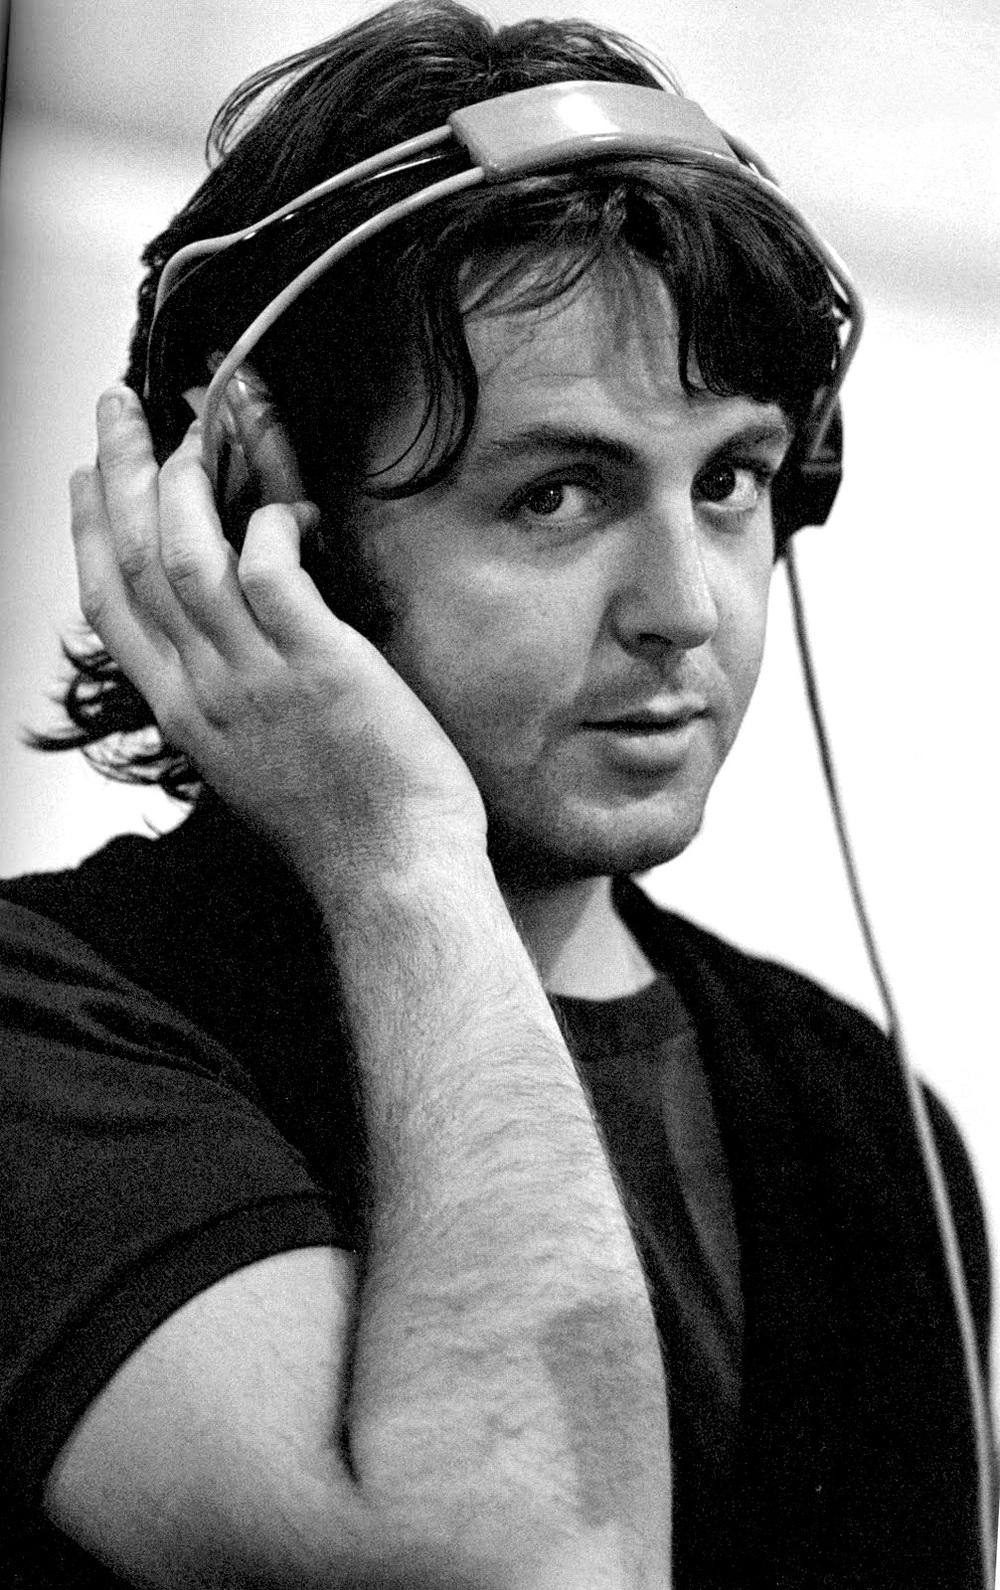 Paul McCartney at Abbey Road, 1969.